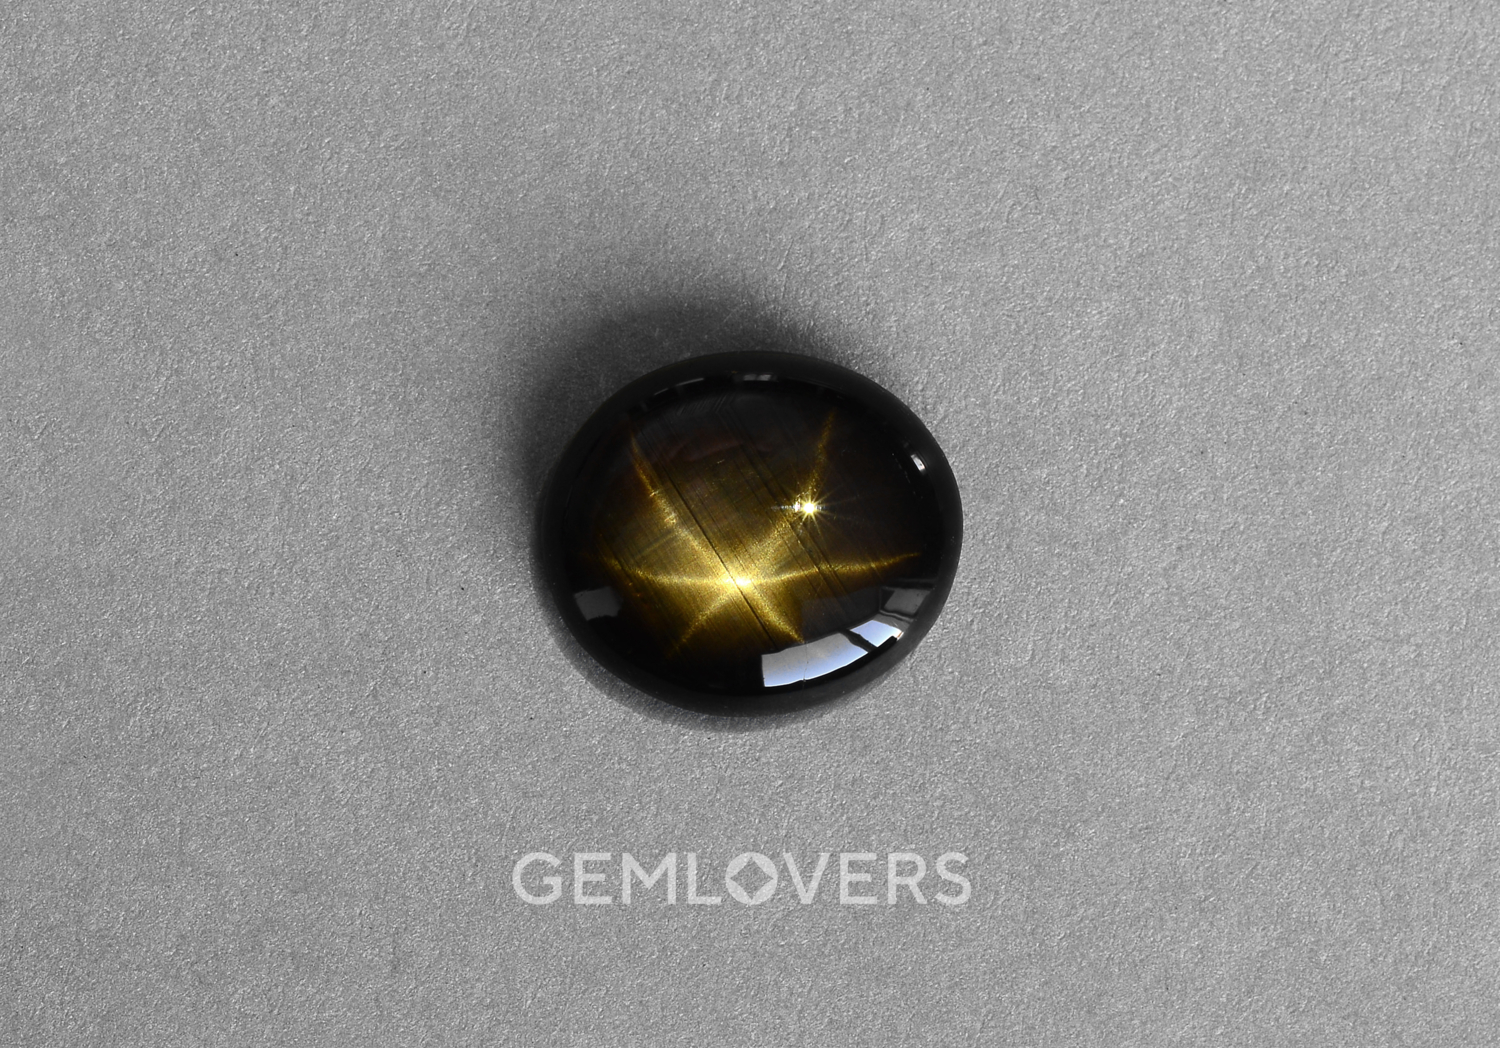 Black sapphire stone with a star